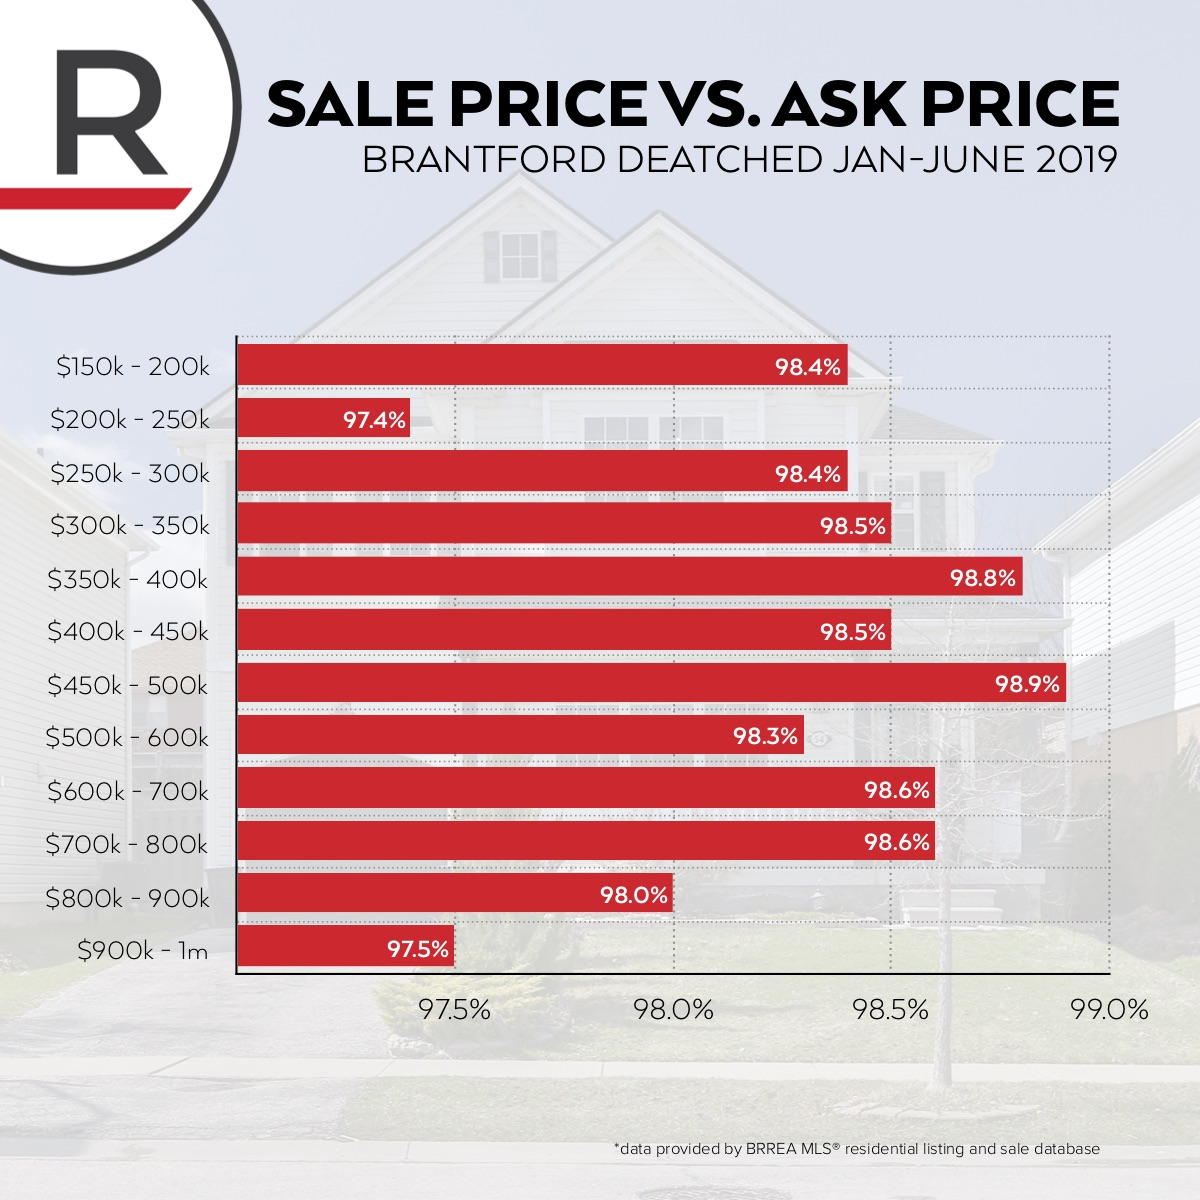 Homes across almost all price point as receiving great offers and selling close to asking price. Homes between $300k - $500k are selling closest to asking price.